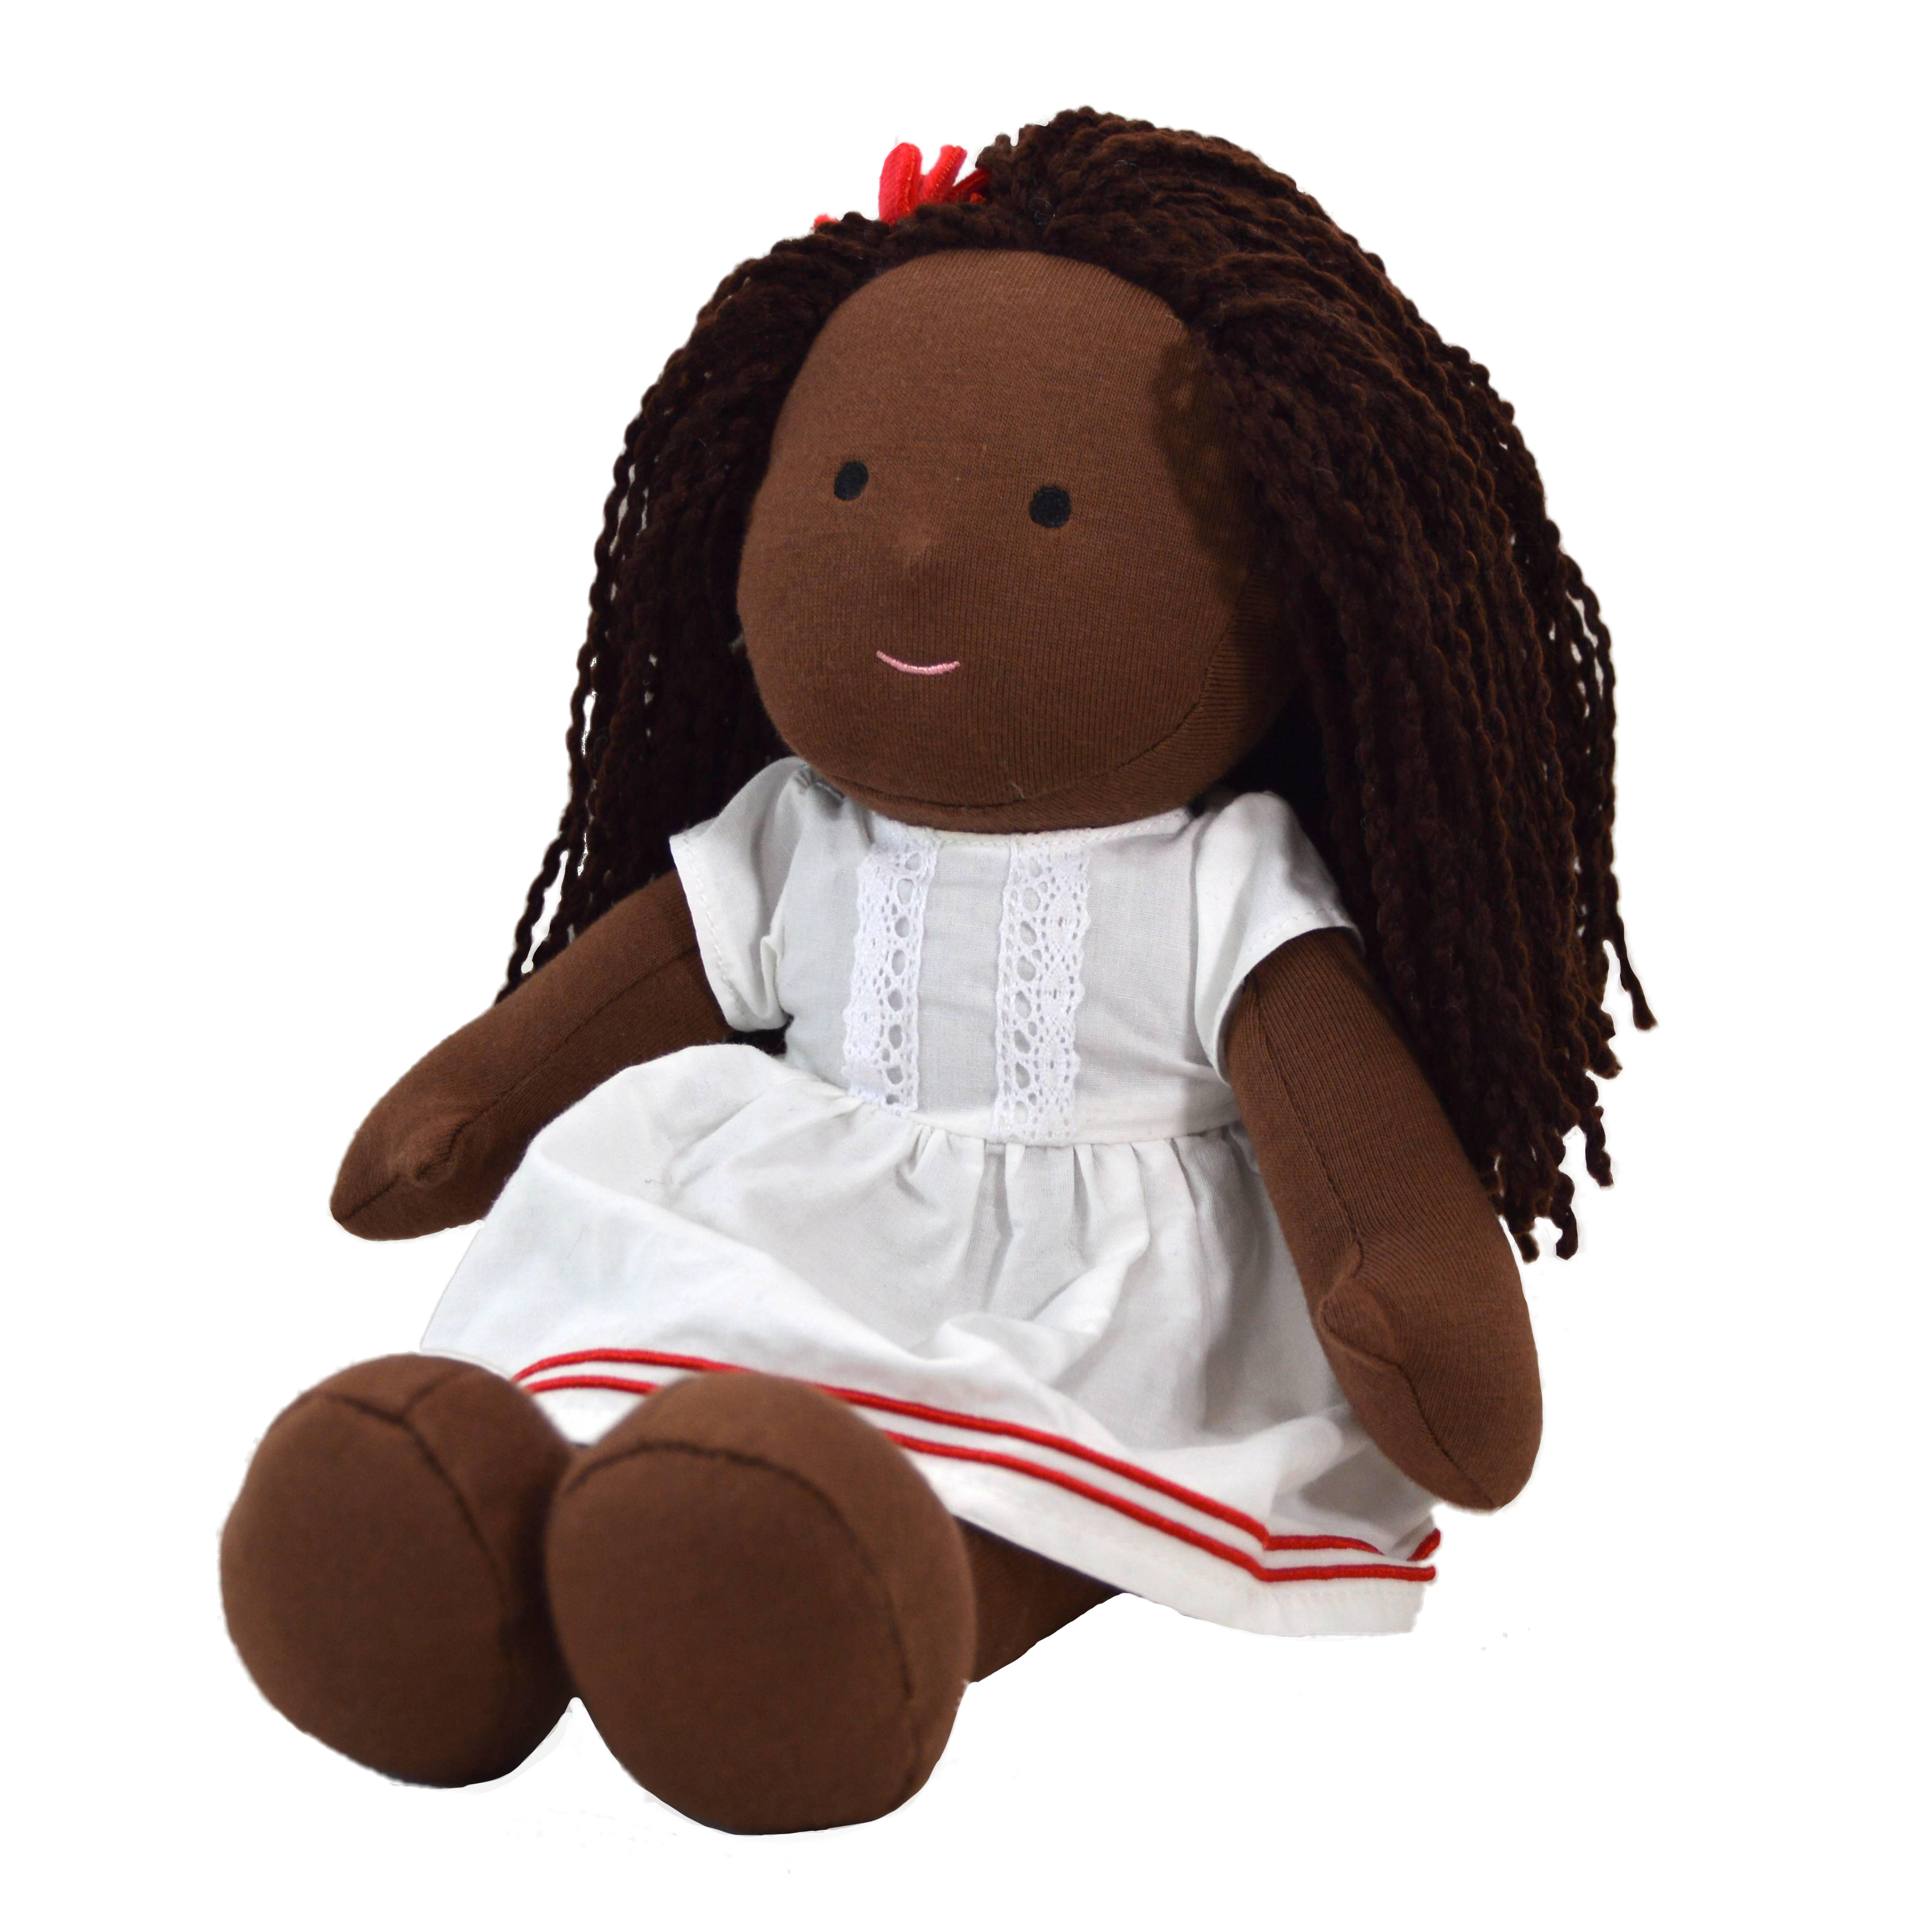 African rag doll in a white dress